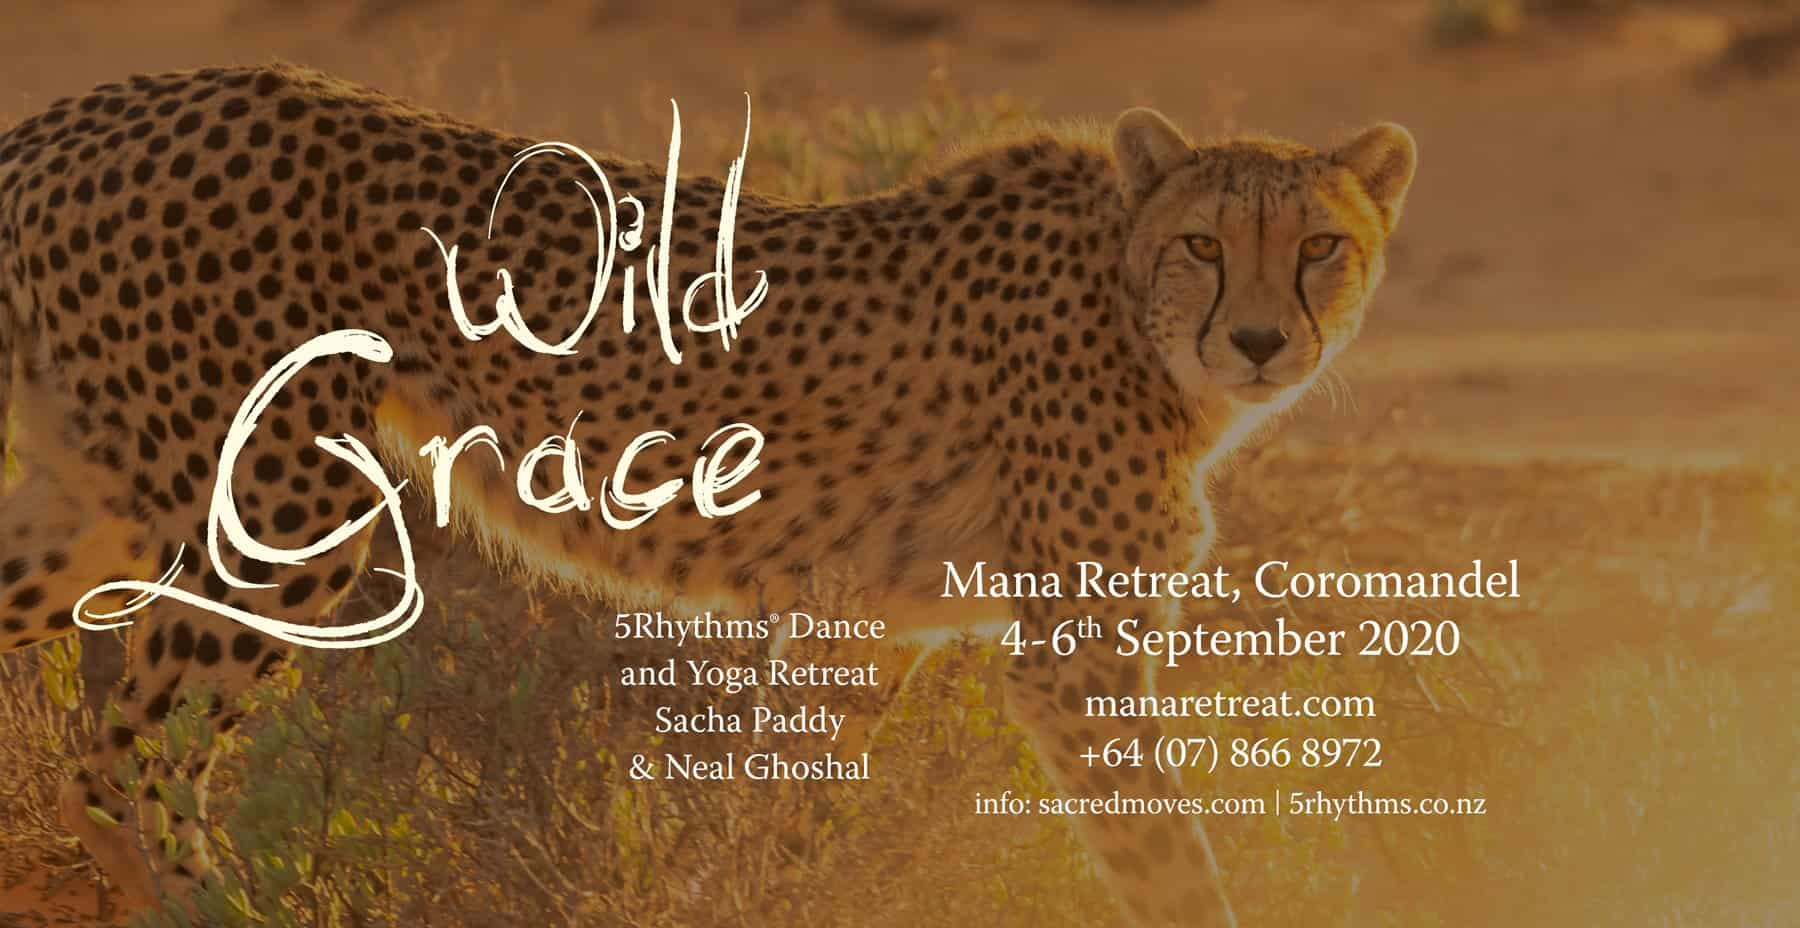 Wild Grace - Yoga and 5Rhythms Dance workshop with Neal Ghoshal and Sacha Paddy